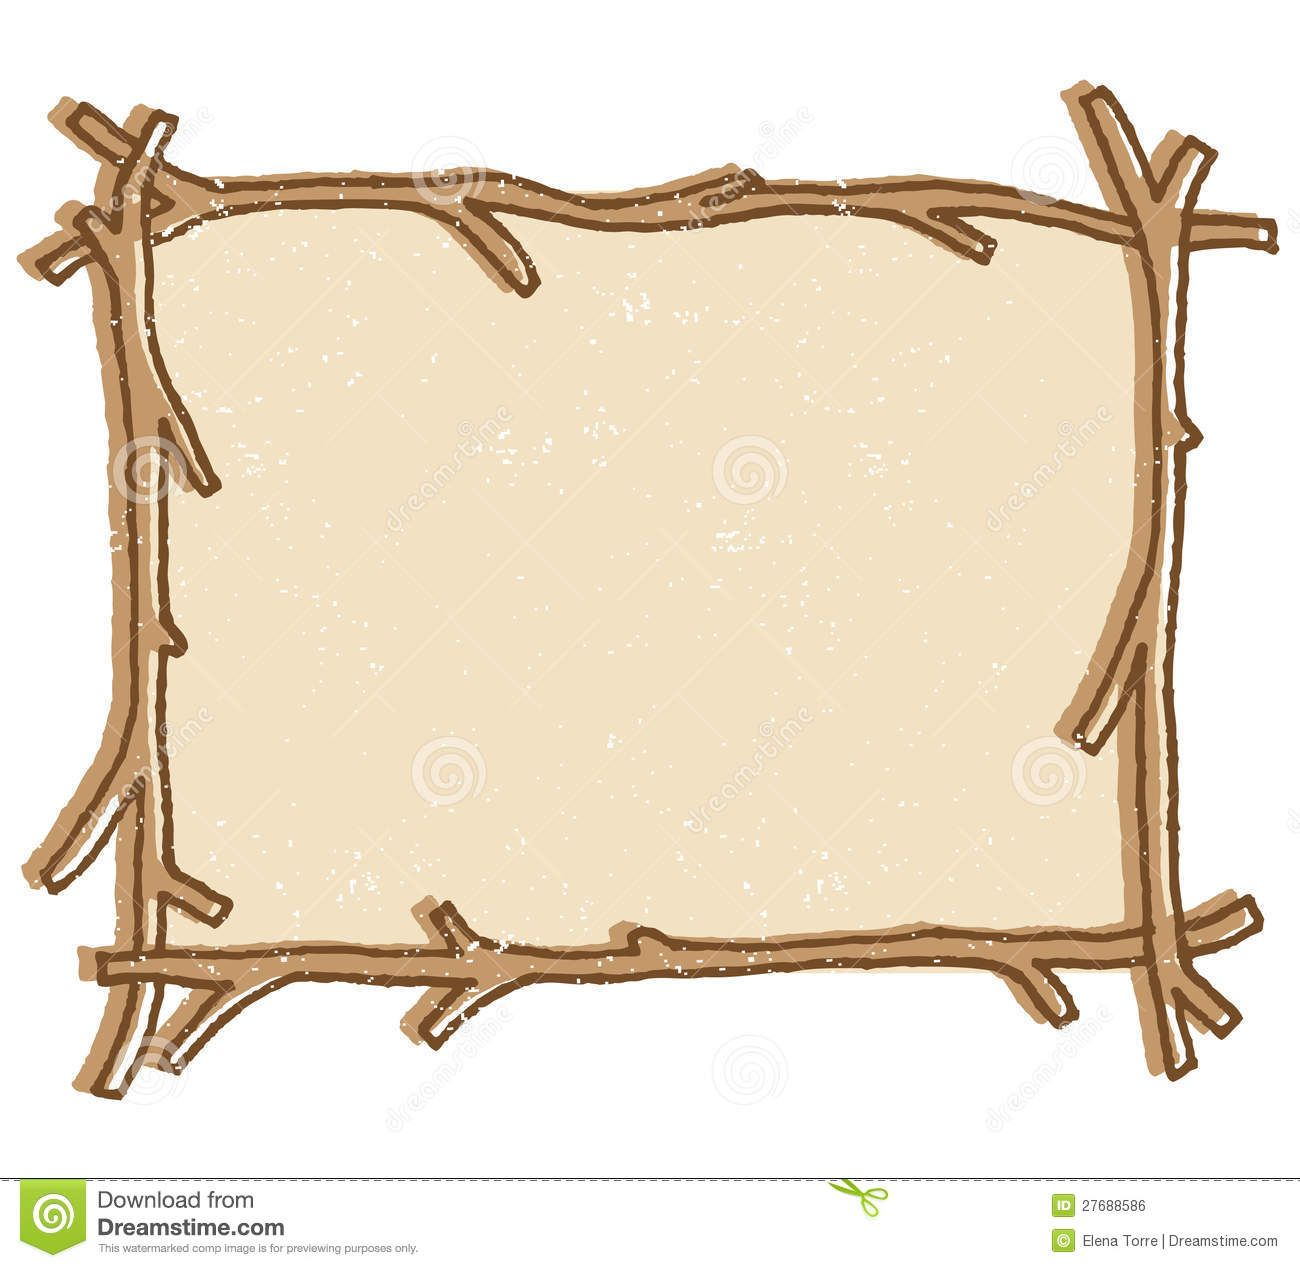 Wooden border clipart free graphic free download free twig or branch borders clipart | Illustration of a twig ... graphic free download